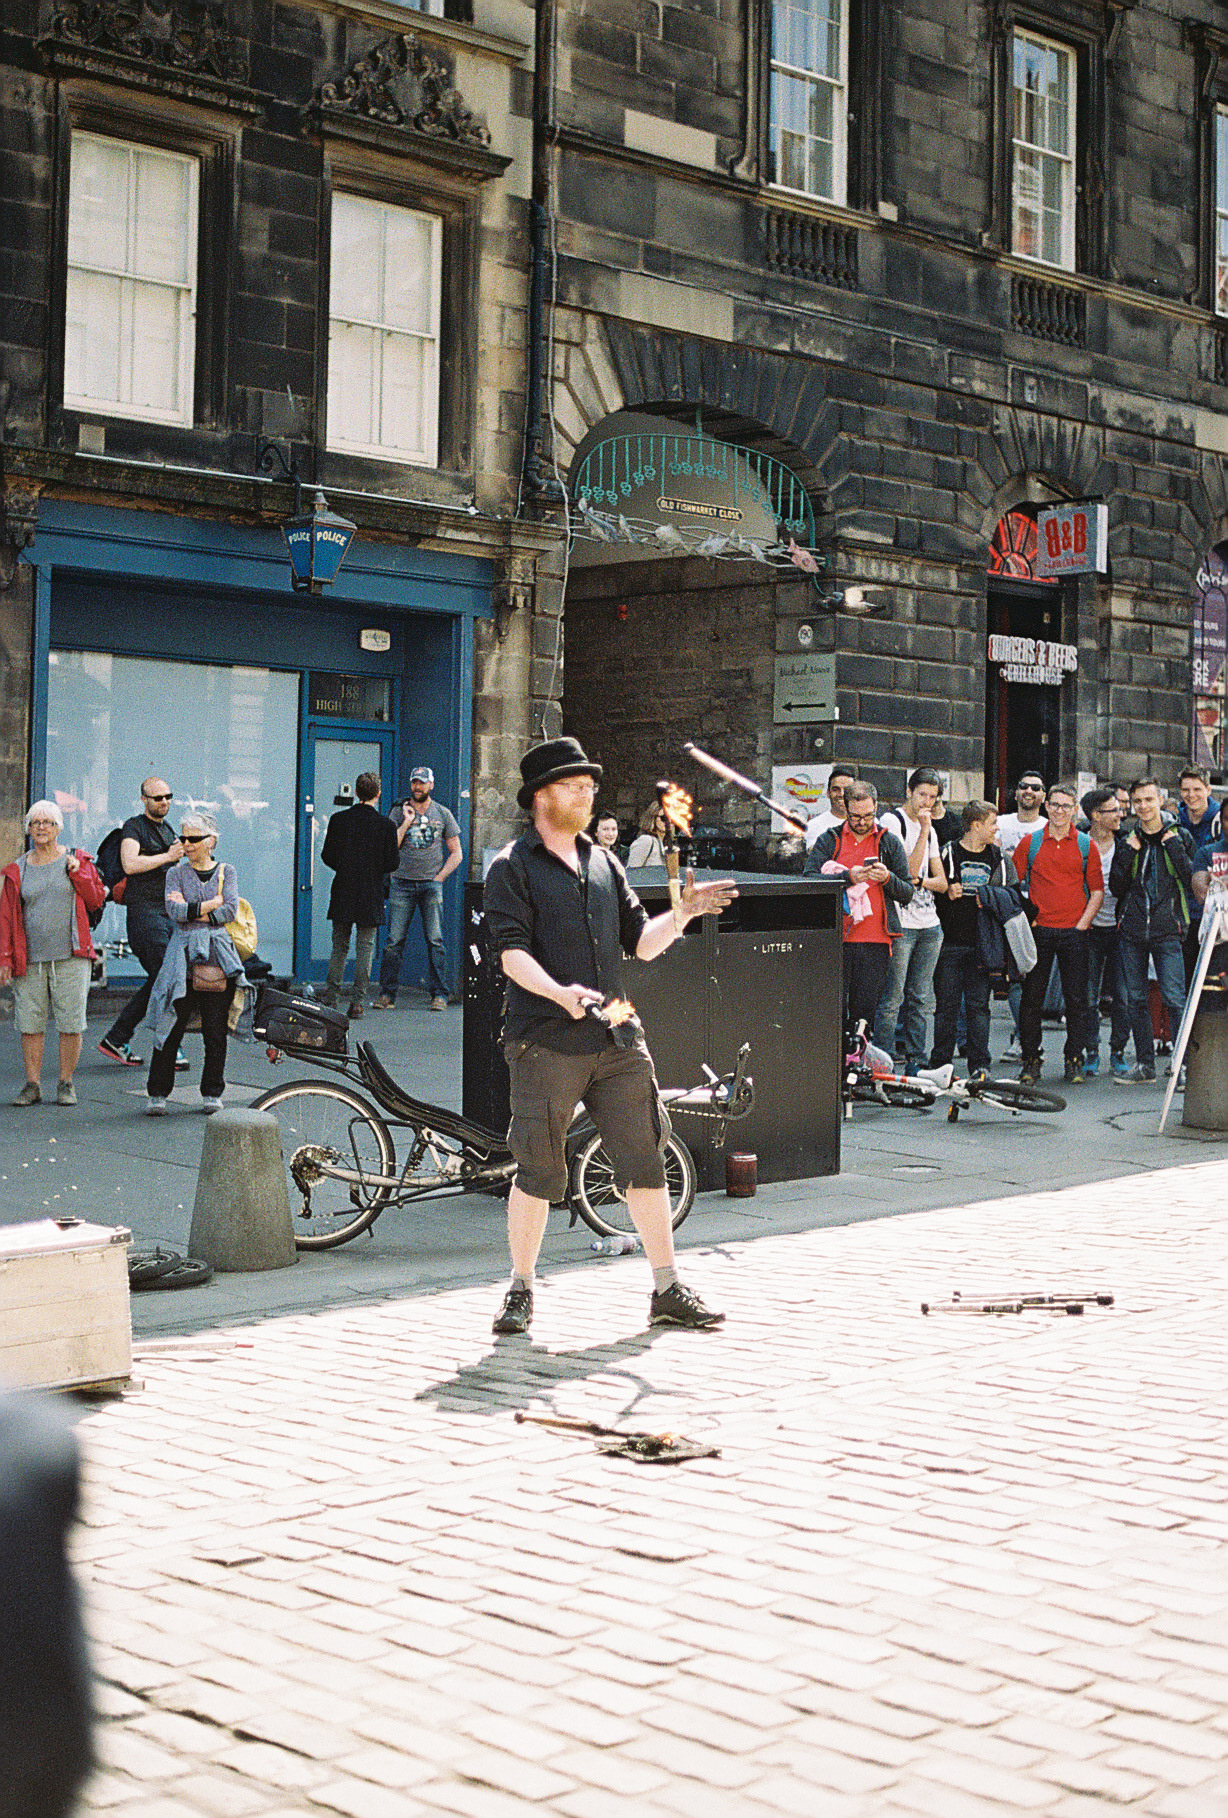 street-performer-juggler-edinburgh-scotland-european-honeymoon